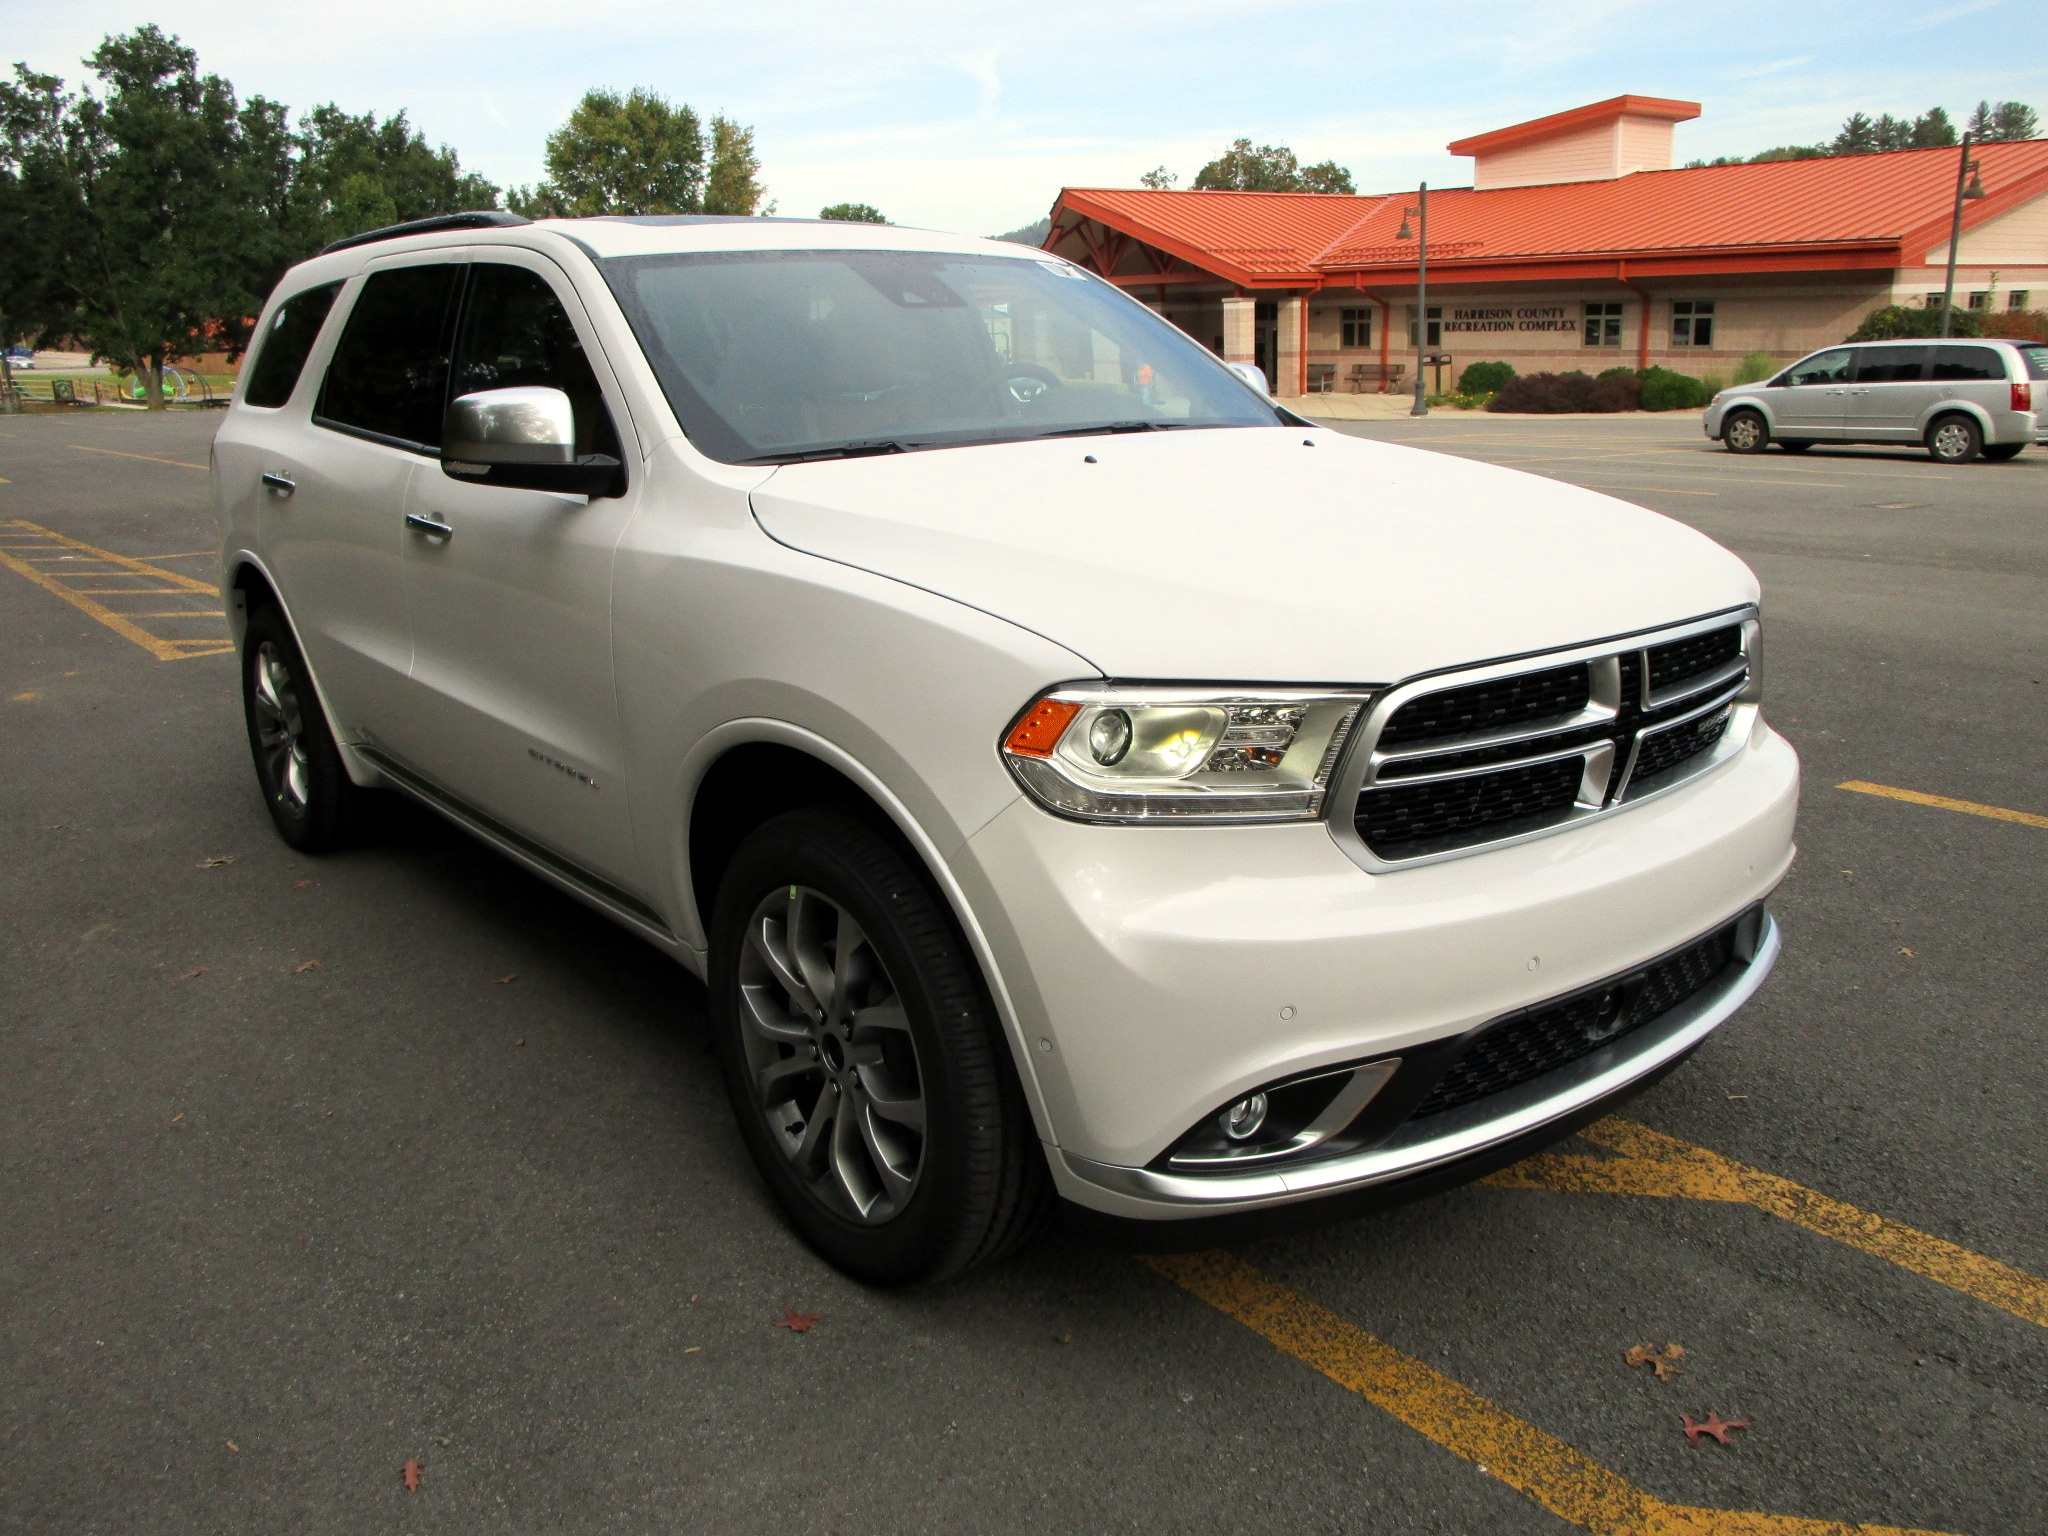 2018 Dodge Durango CITADEL ANODIZED PLATINUM AWD Sport Utility DYNAMIC_PREF_LABEL_INVENTORY_FEATURED_DEFAULT_INVENTORY_FEATURED1_ALTATTRIBUTEAFTER